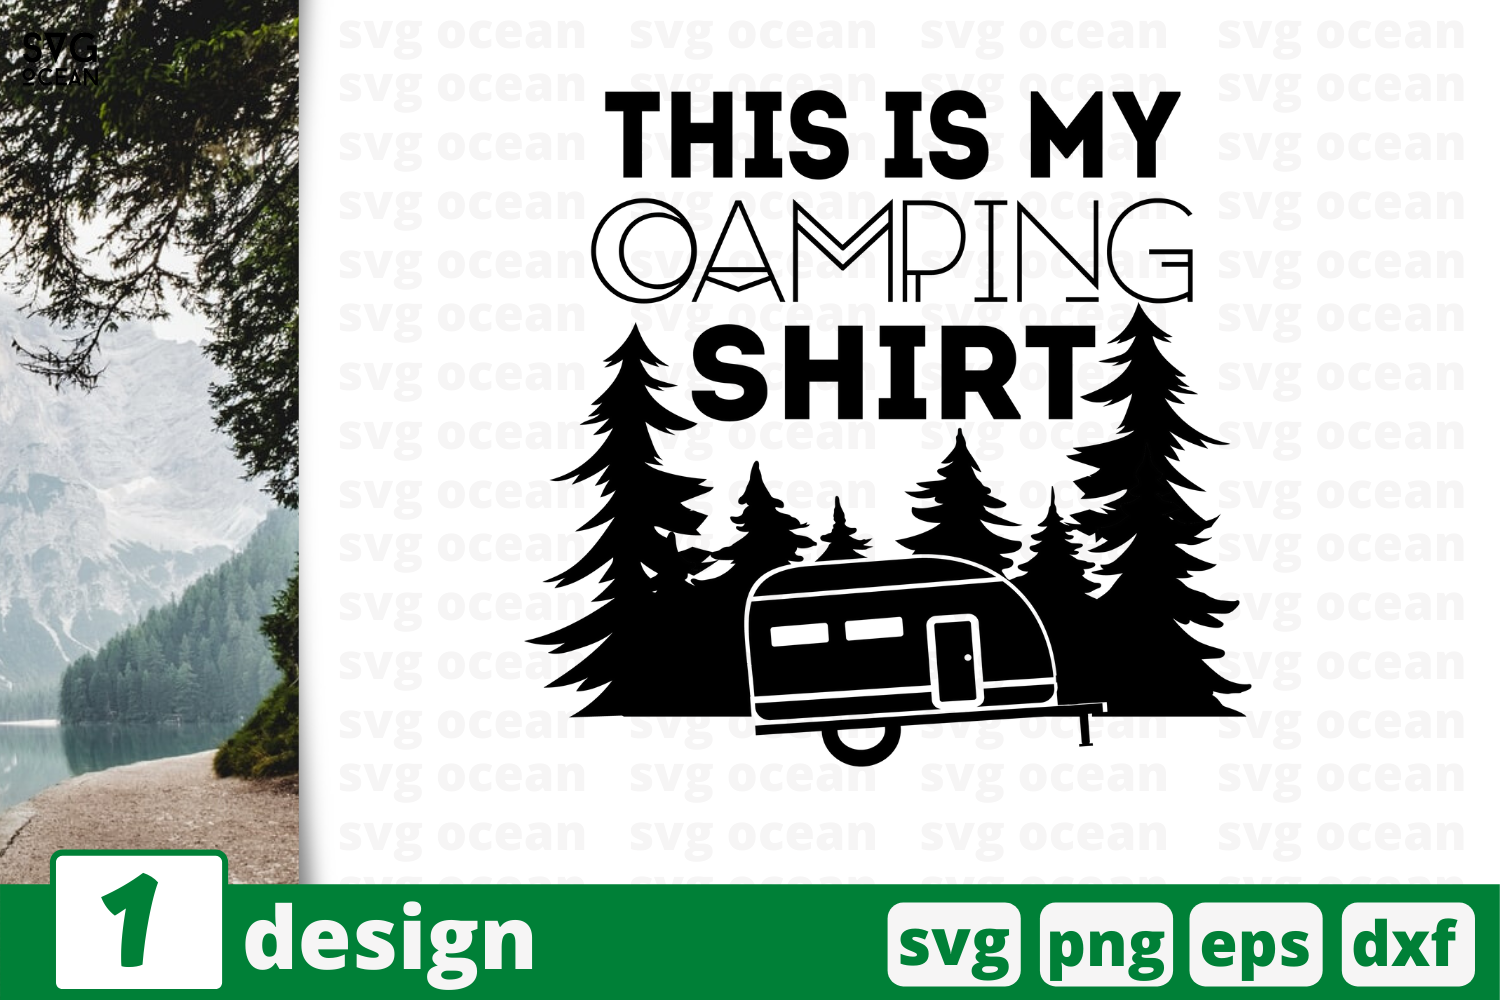 Download Free This Is My Camping Shirt Graphic By Svgocean Creative Fabrica for Cricut Explore, Silhouette and other cutting machines.